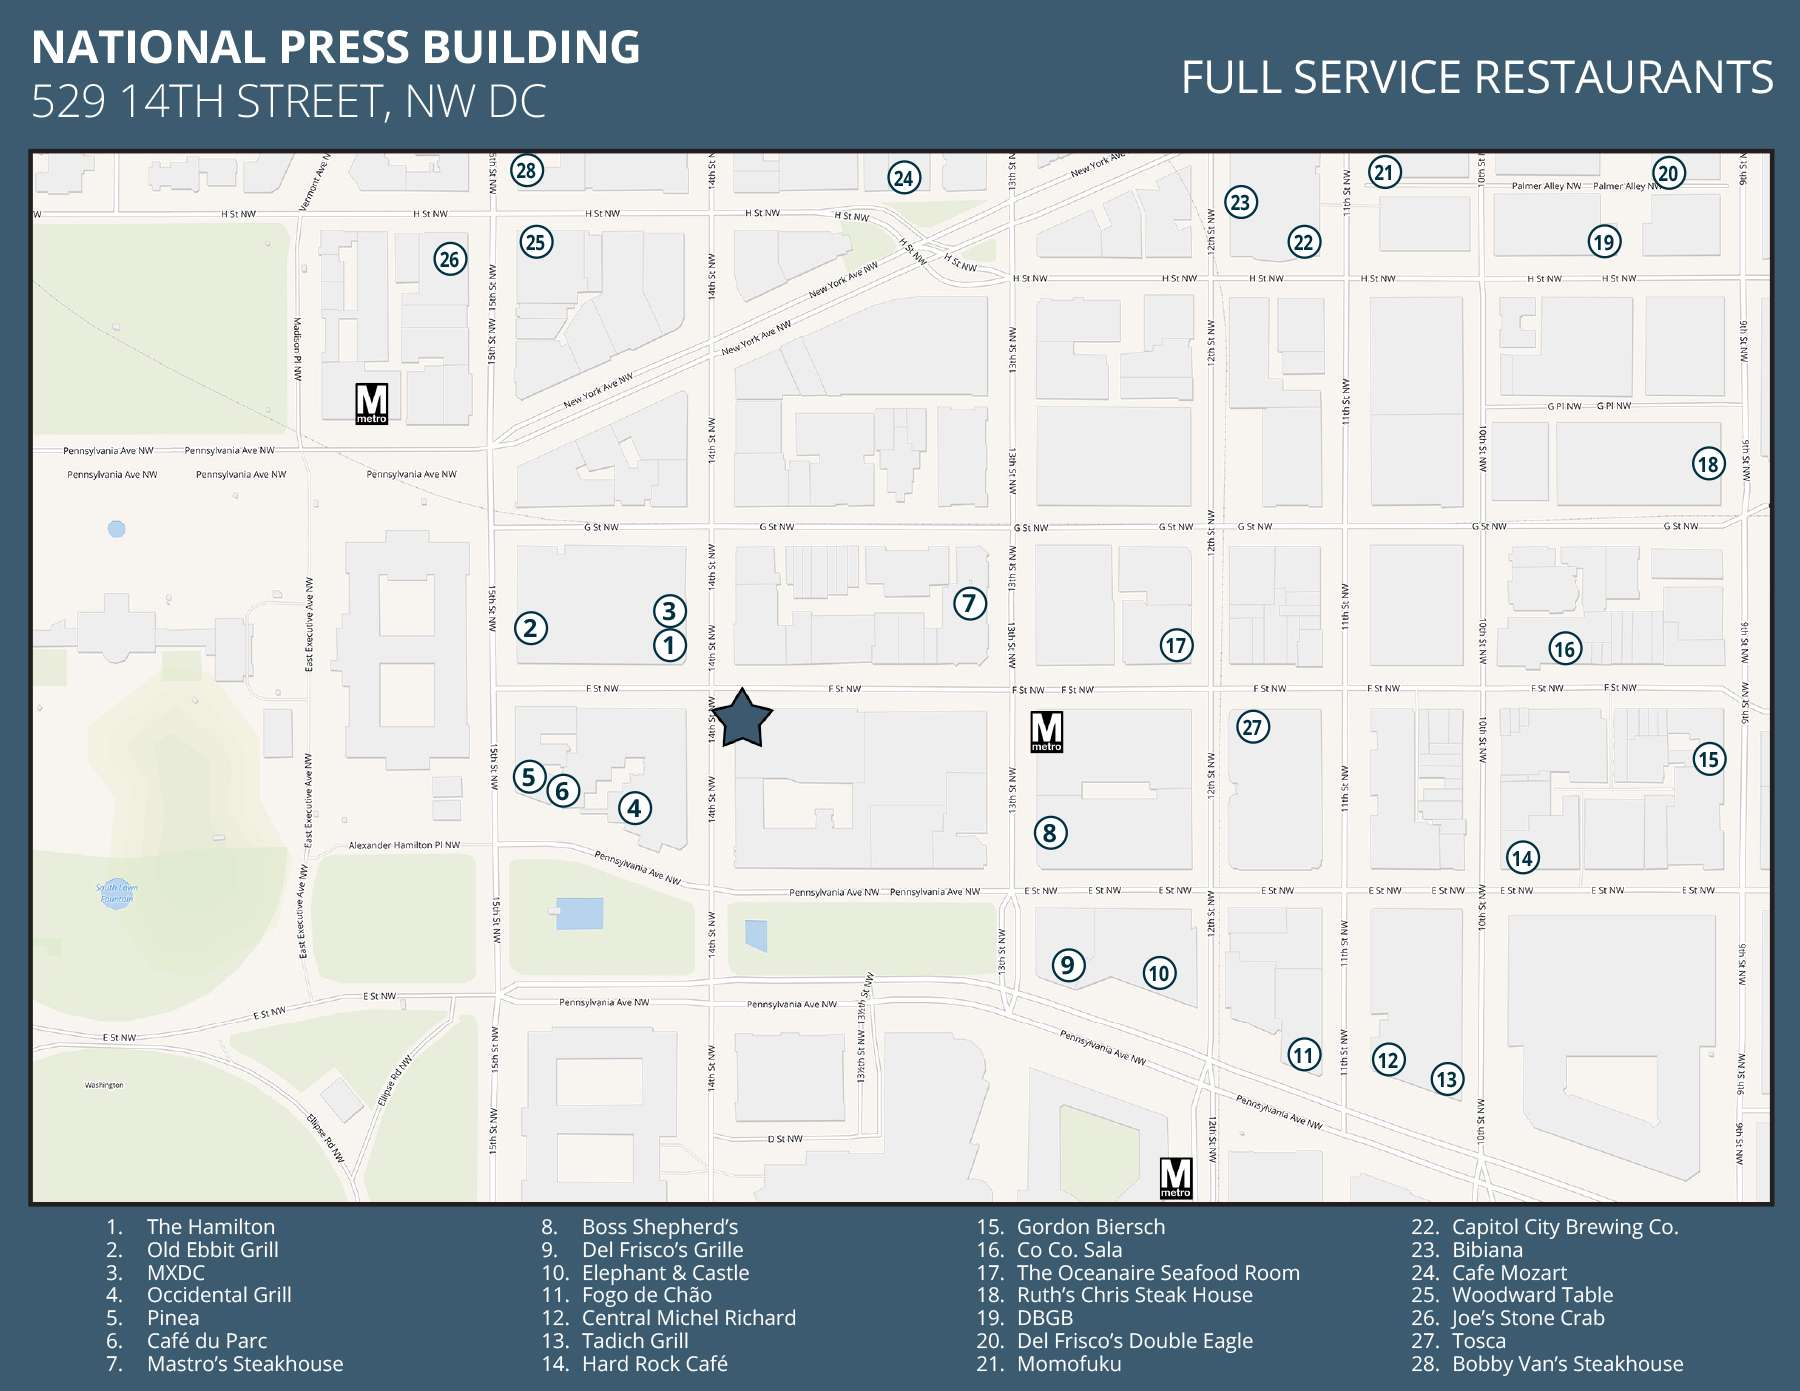 nation-press-building-neighborhood-retail-maps-draft-1-1